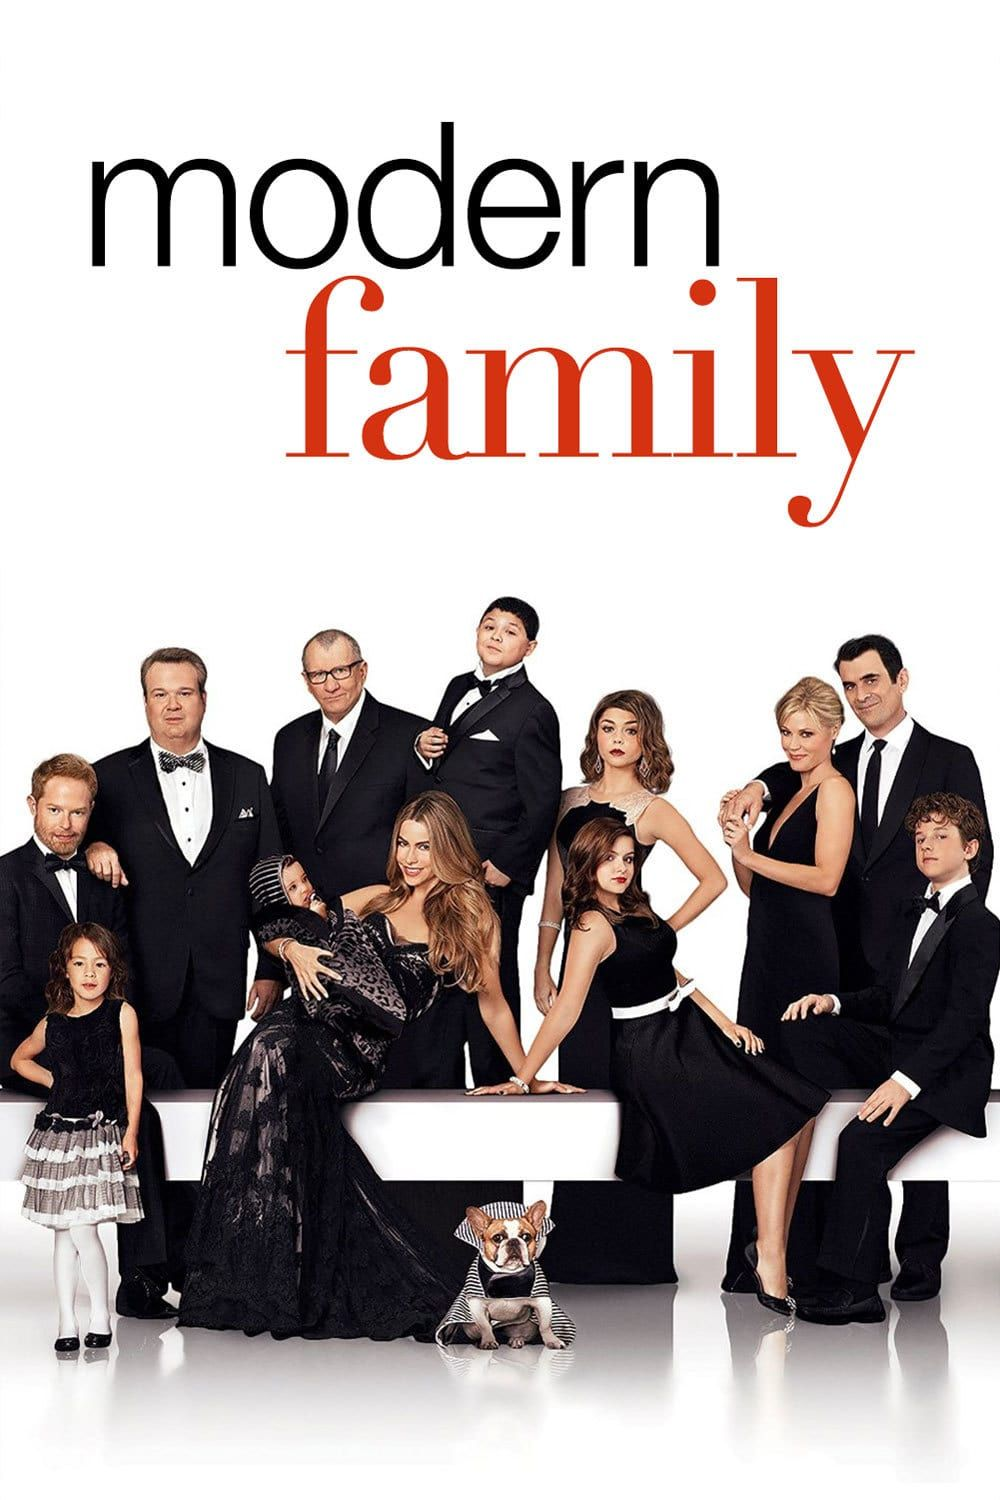 Title Modern Family Genre Comedy Air Date 20190925